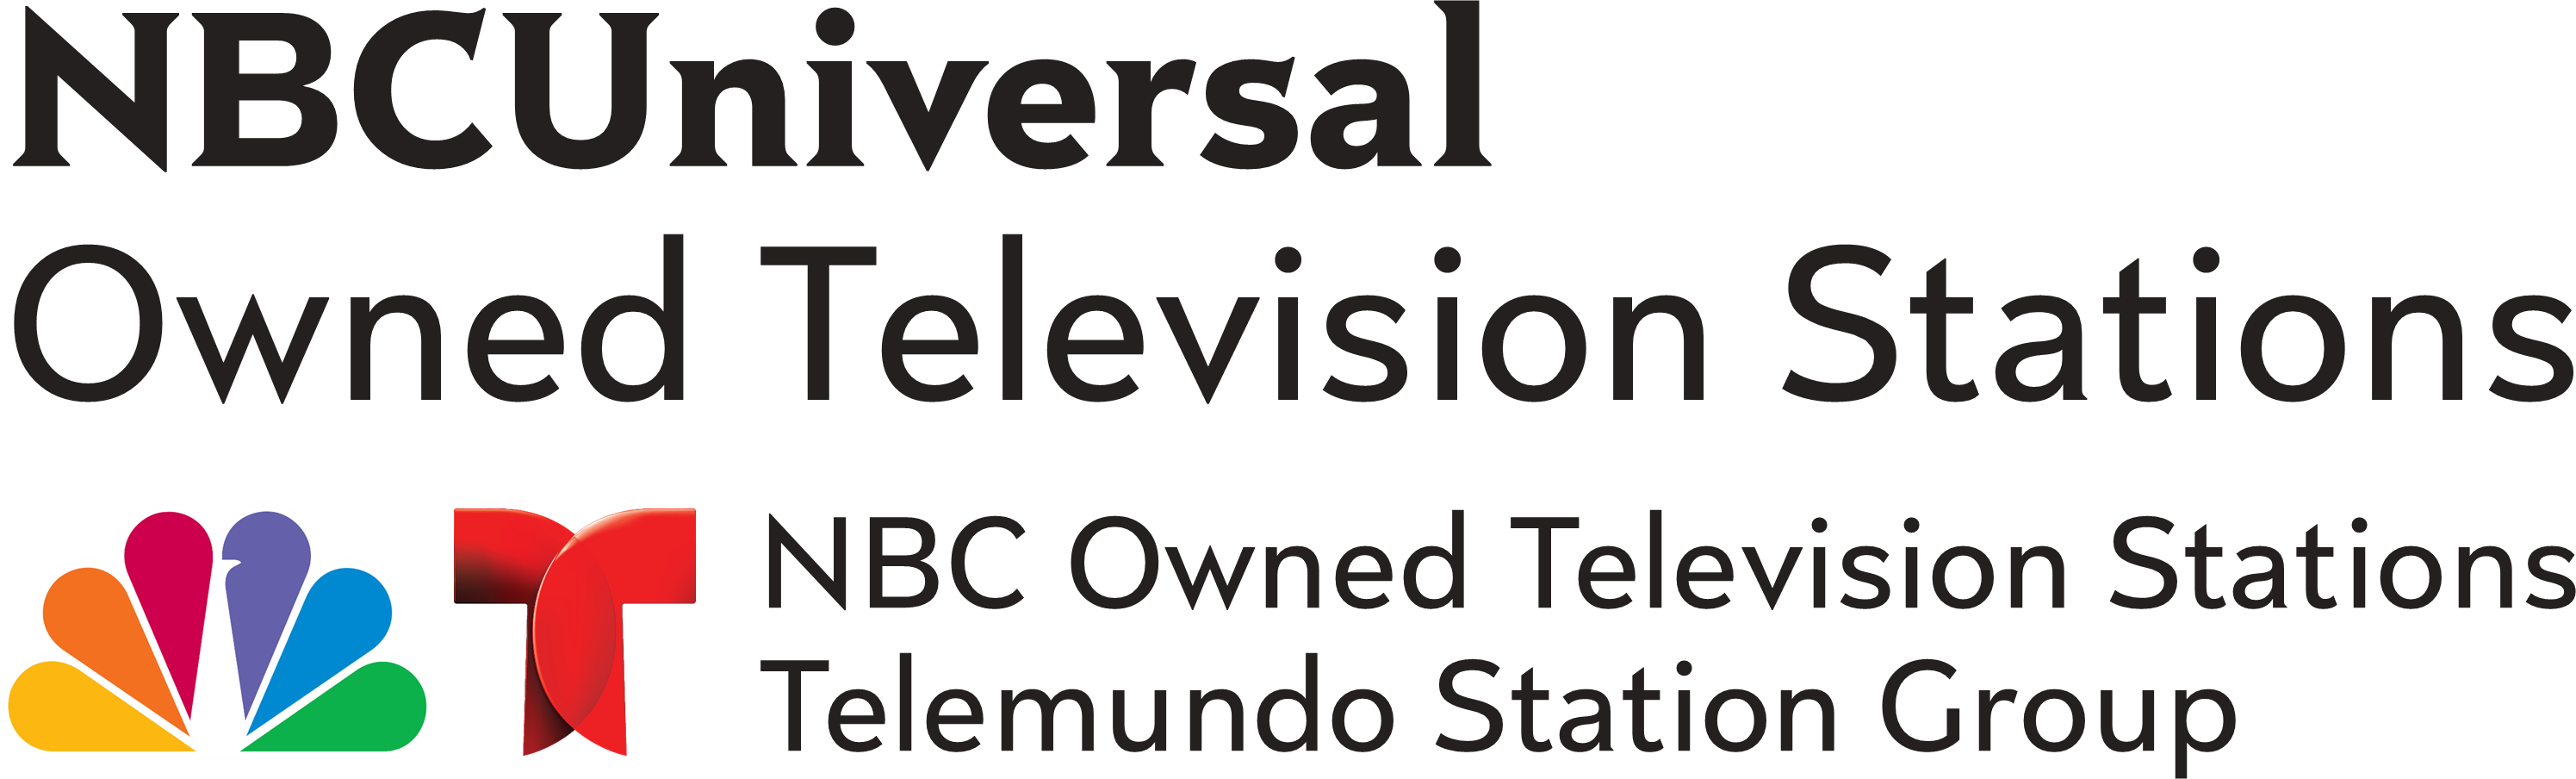 nbcuniversal_owned_television_stations_nbc_owned_television_stations_logo